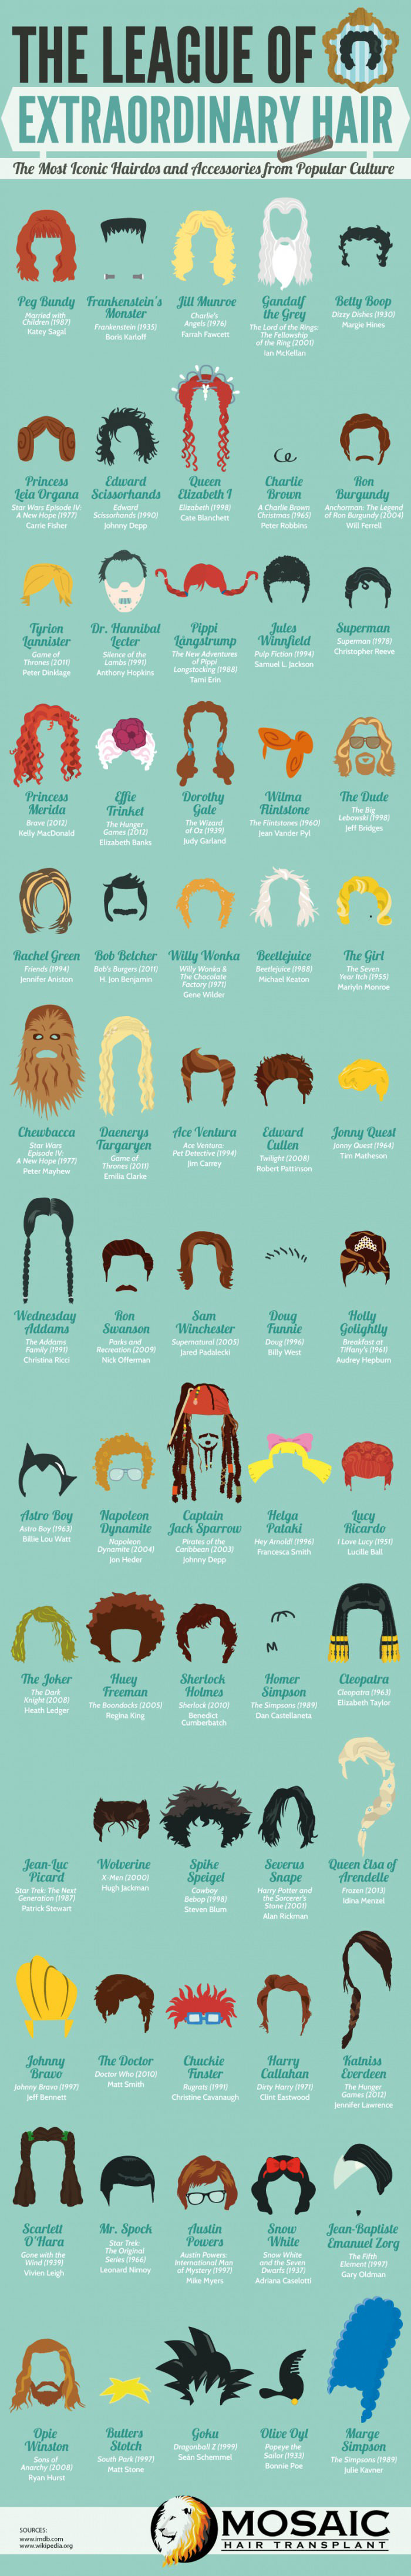 the league of extraordinary hair, the most iconic hairdos and accessories from popular culture